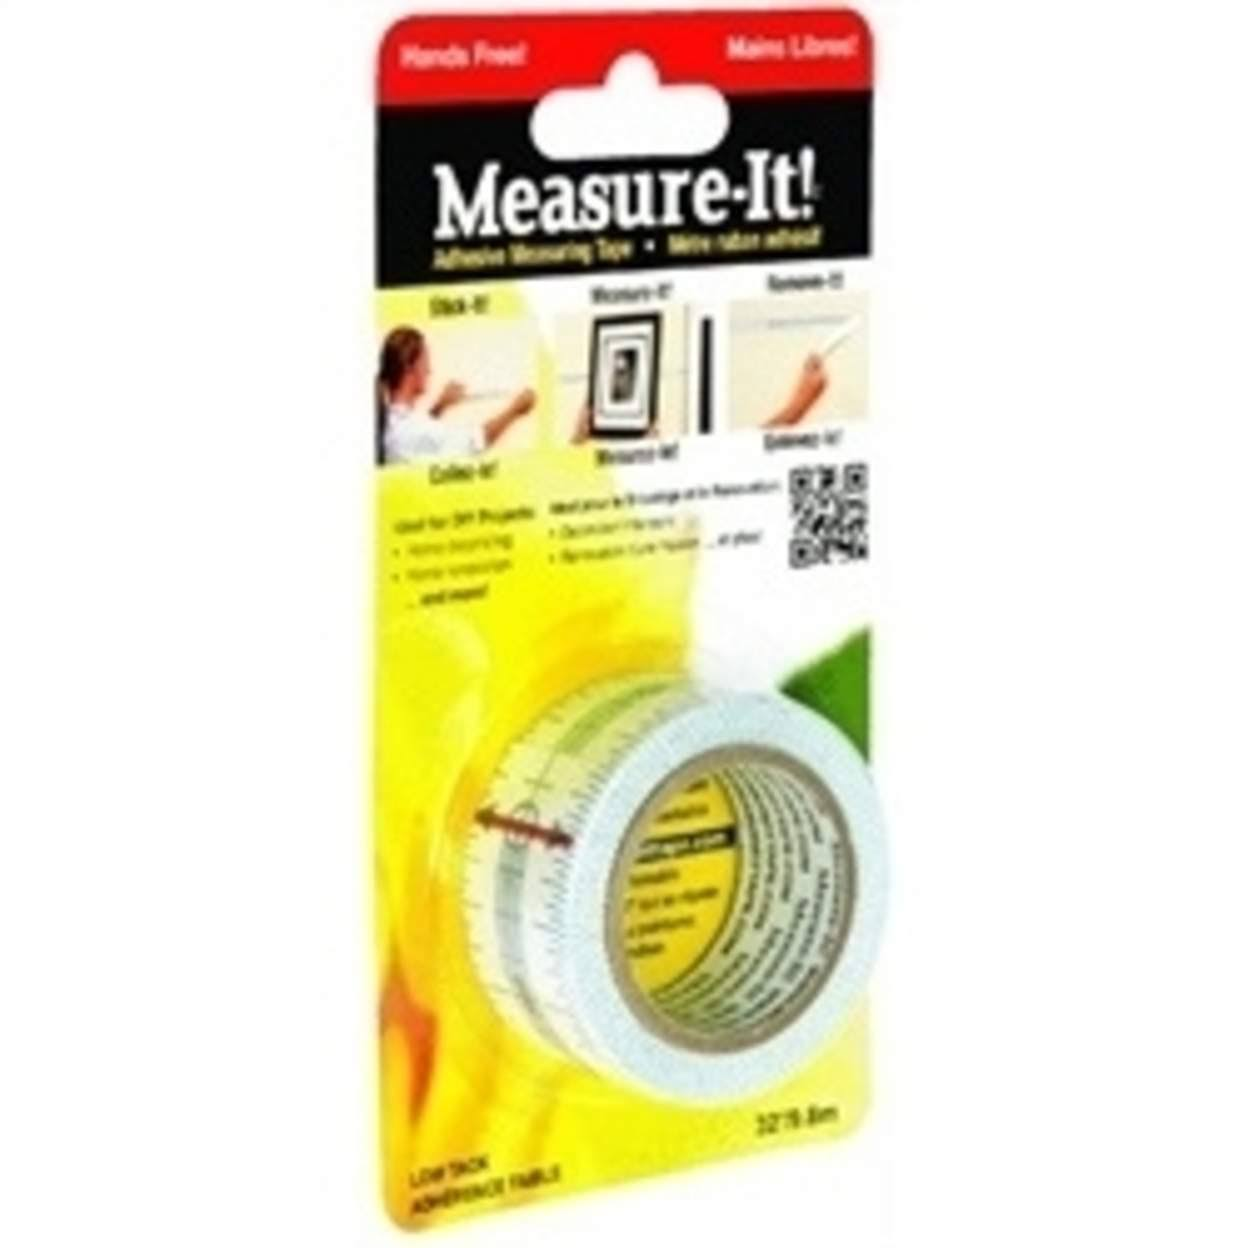 Measure-It Adhesive Measuring Tape - 32'